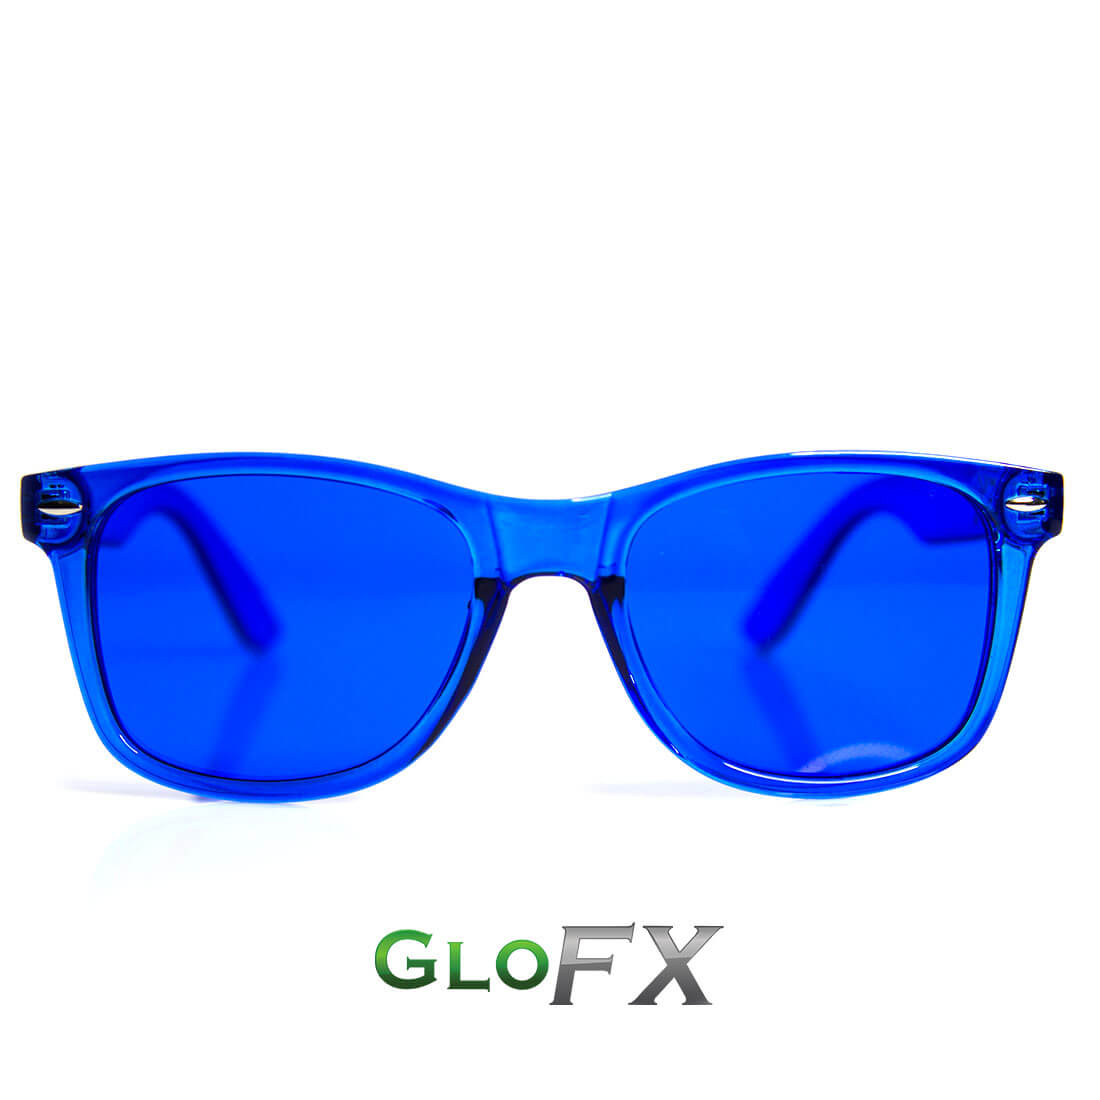 GloFXColor-GloFX-Color-Therapy-Tinted-Glasses-Blue-1